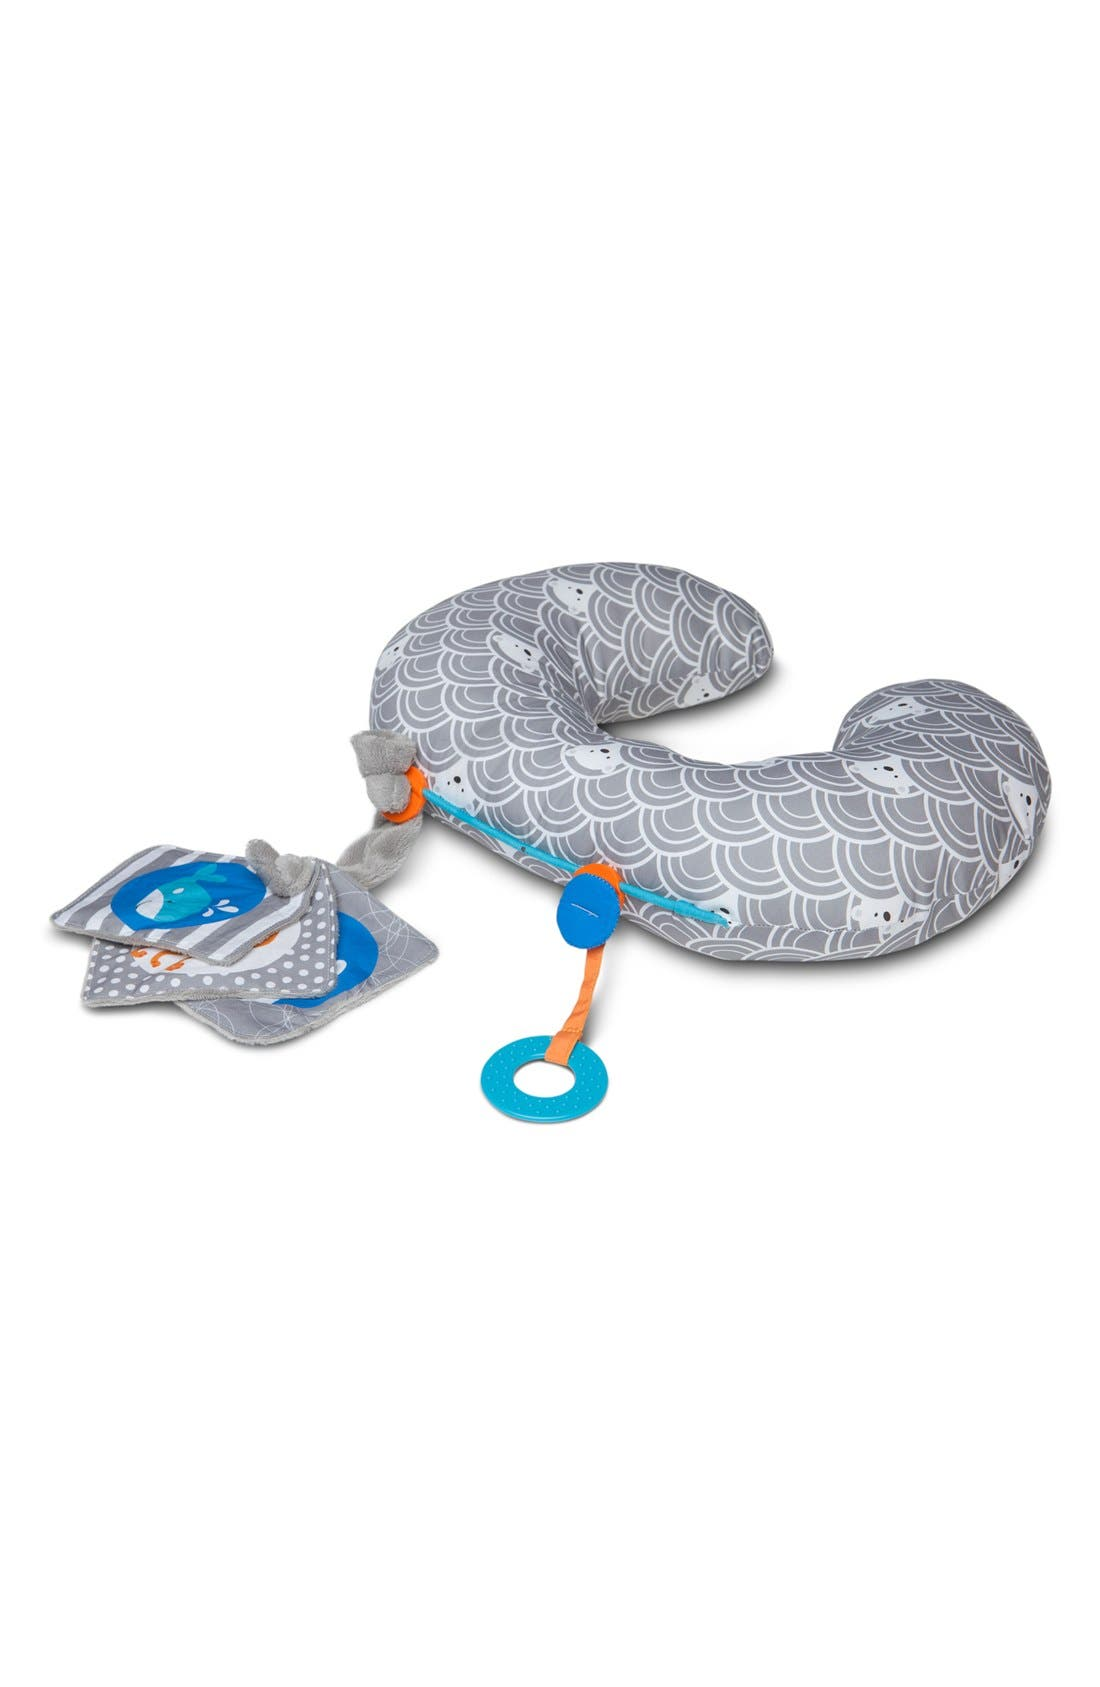 BOPPY, Tummy Time - SlideLine Collection Mini Pillow, Book & Teething Ring, Alternate thumbnail 3, color, 020